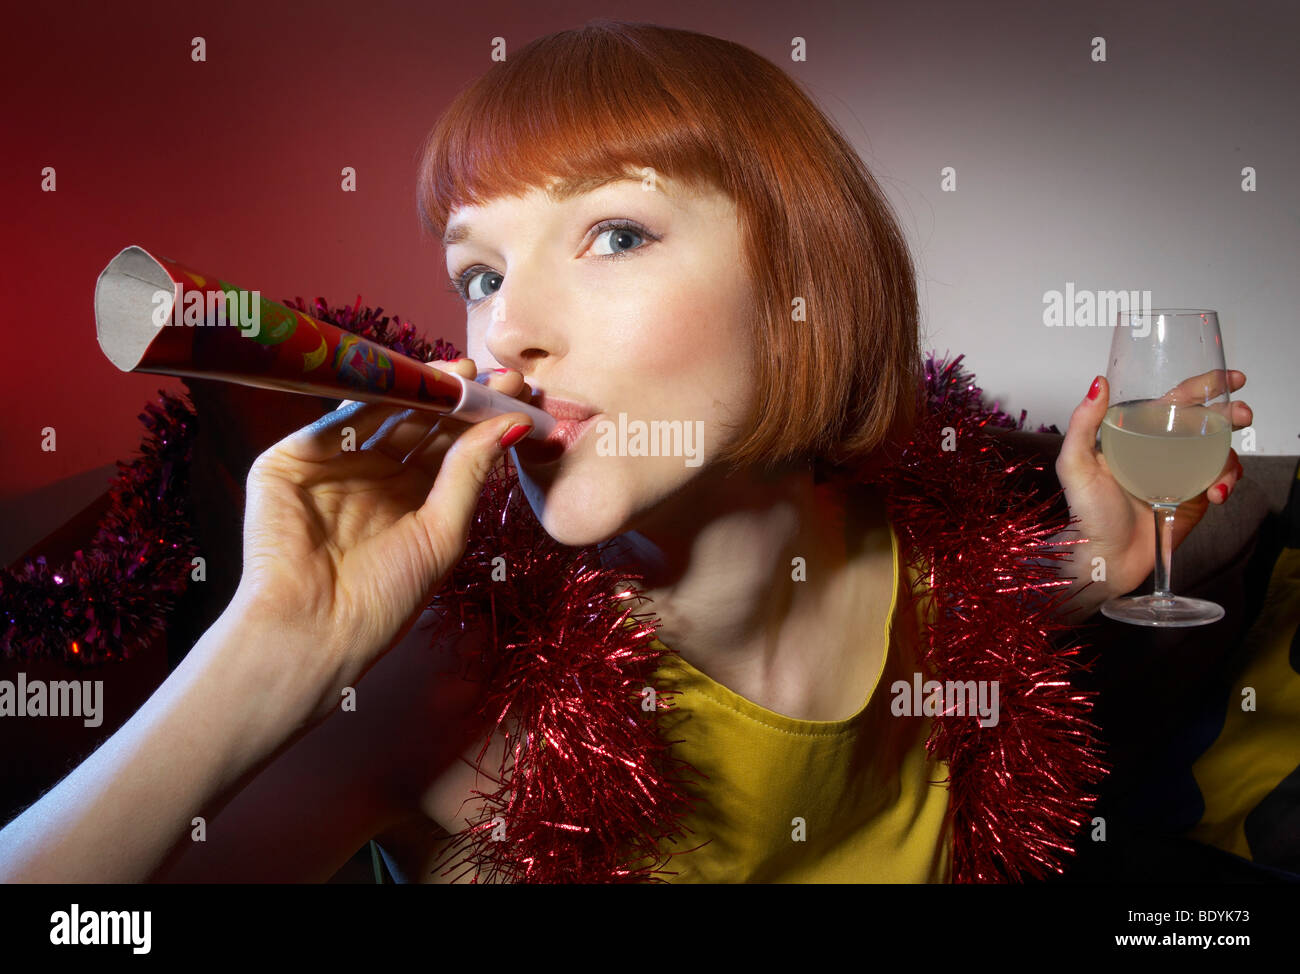 woman at party blowing party horn blower - Stock Image